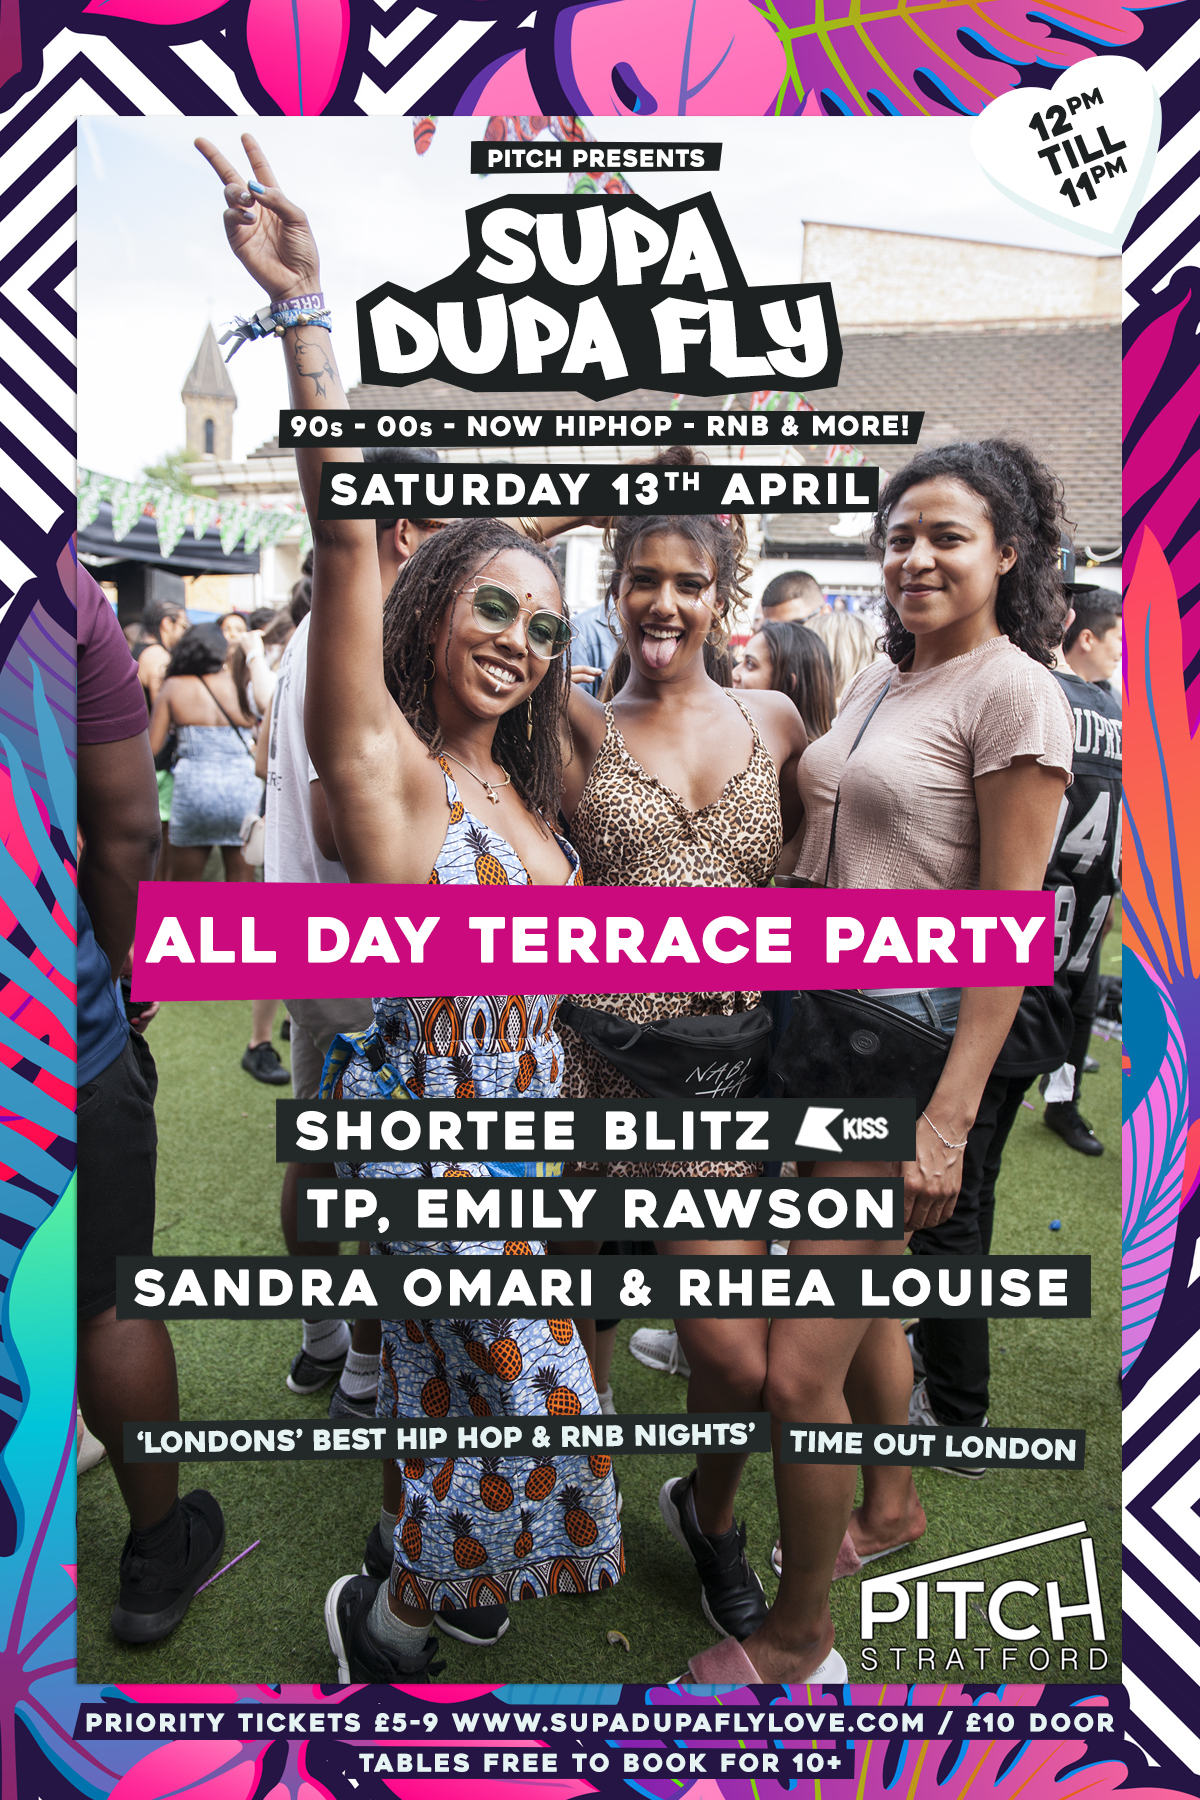 Pitch Presents x Supa Dupa Fly x All Day Terrace Party